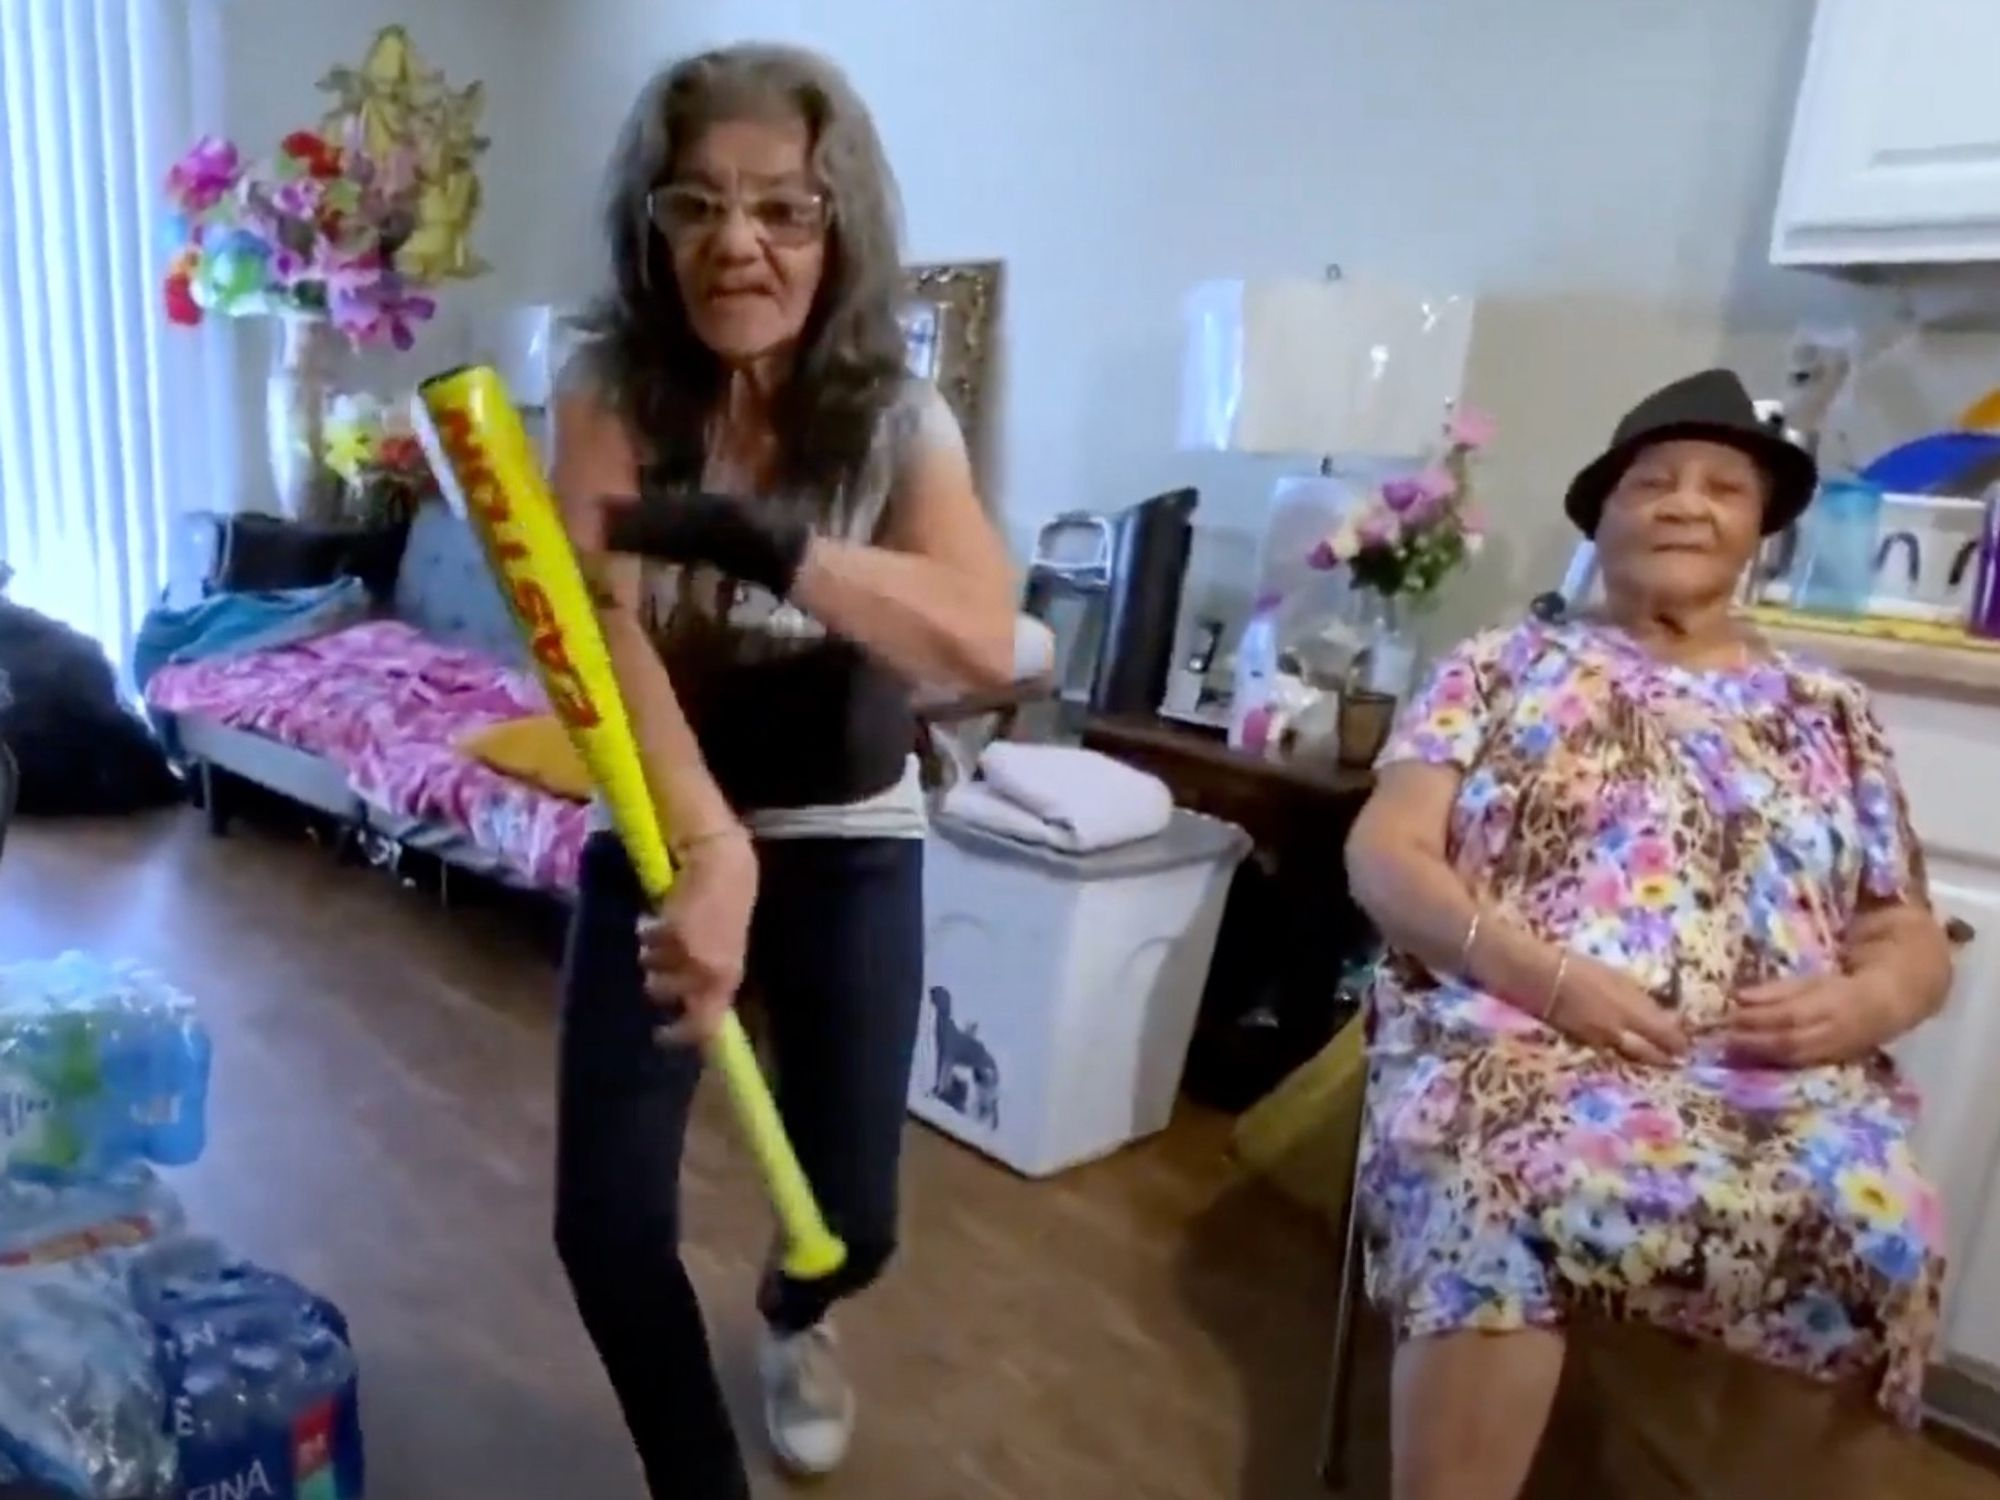 82-year-old woman saved from intruder attack by bat-wielding elderly neighbor with martial arts skills